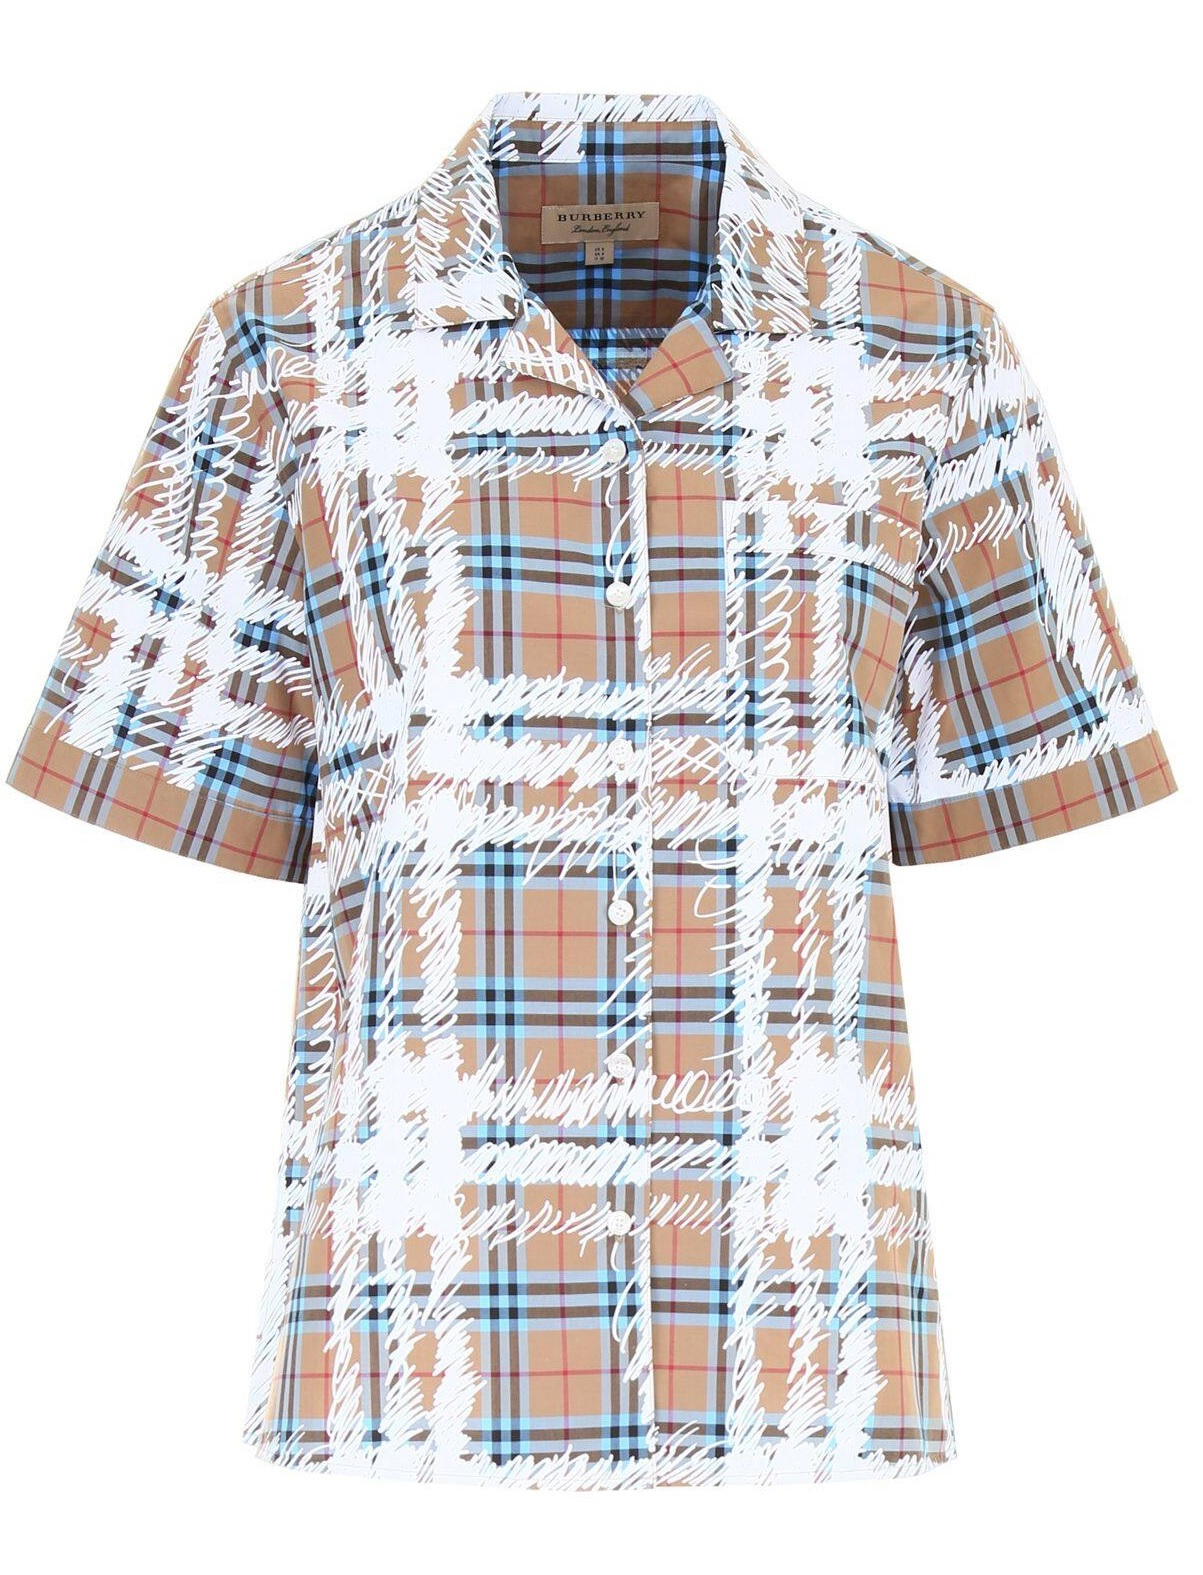 Burberry Ladies Short Sleeve Cotton Shirt In Bright Mineral Blue